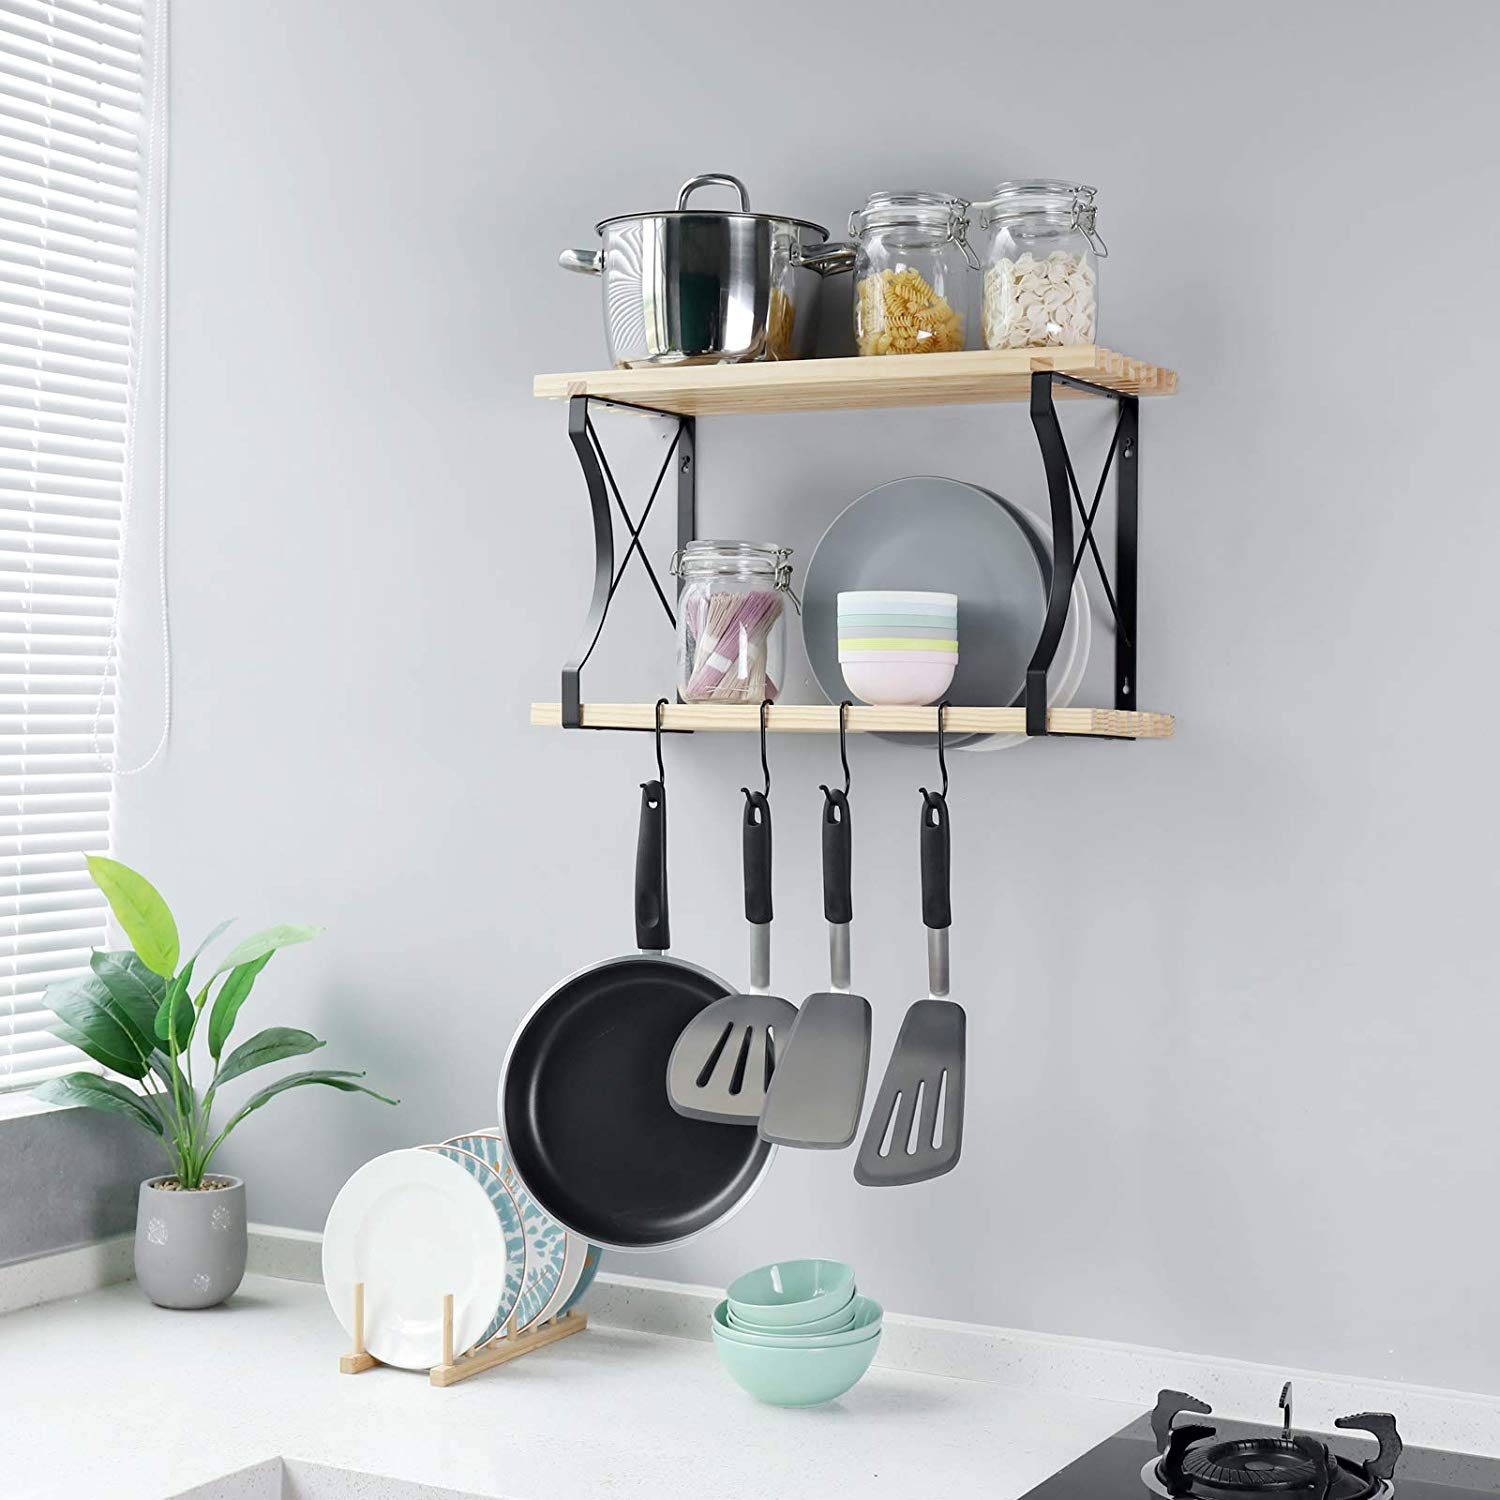 Kitchen Shelf With Hooks | Bed Bath & Beyond